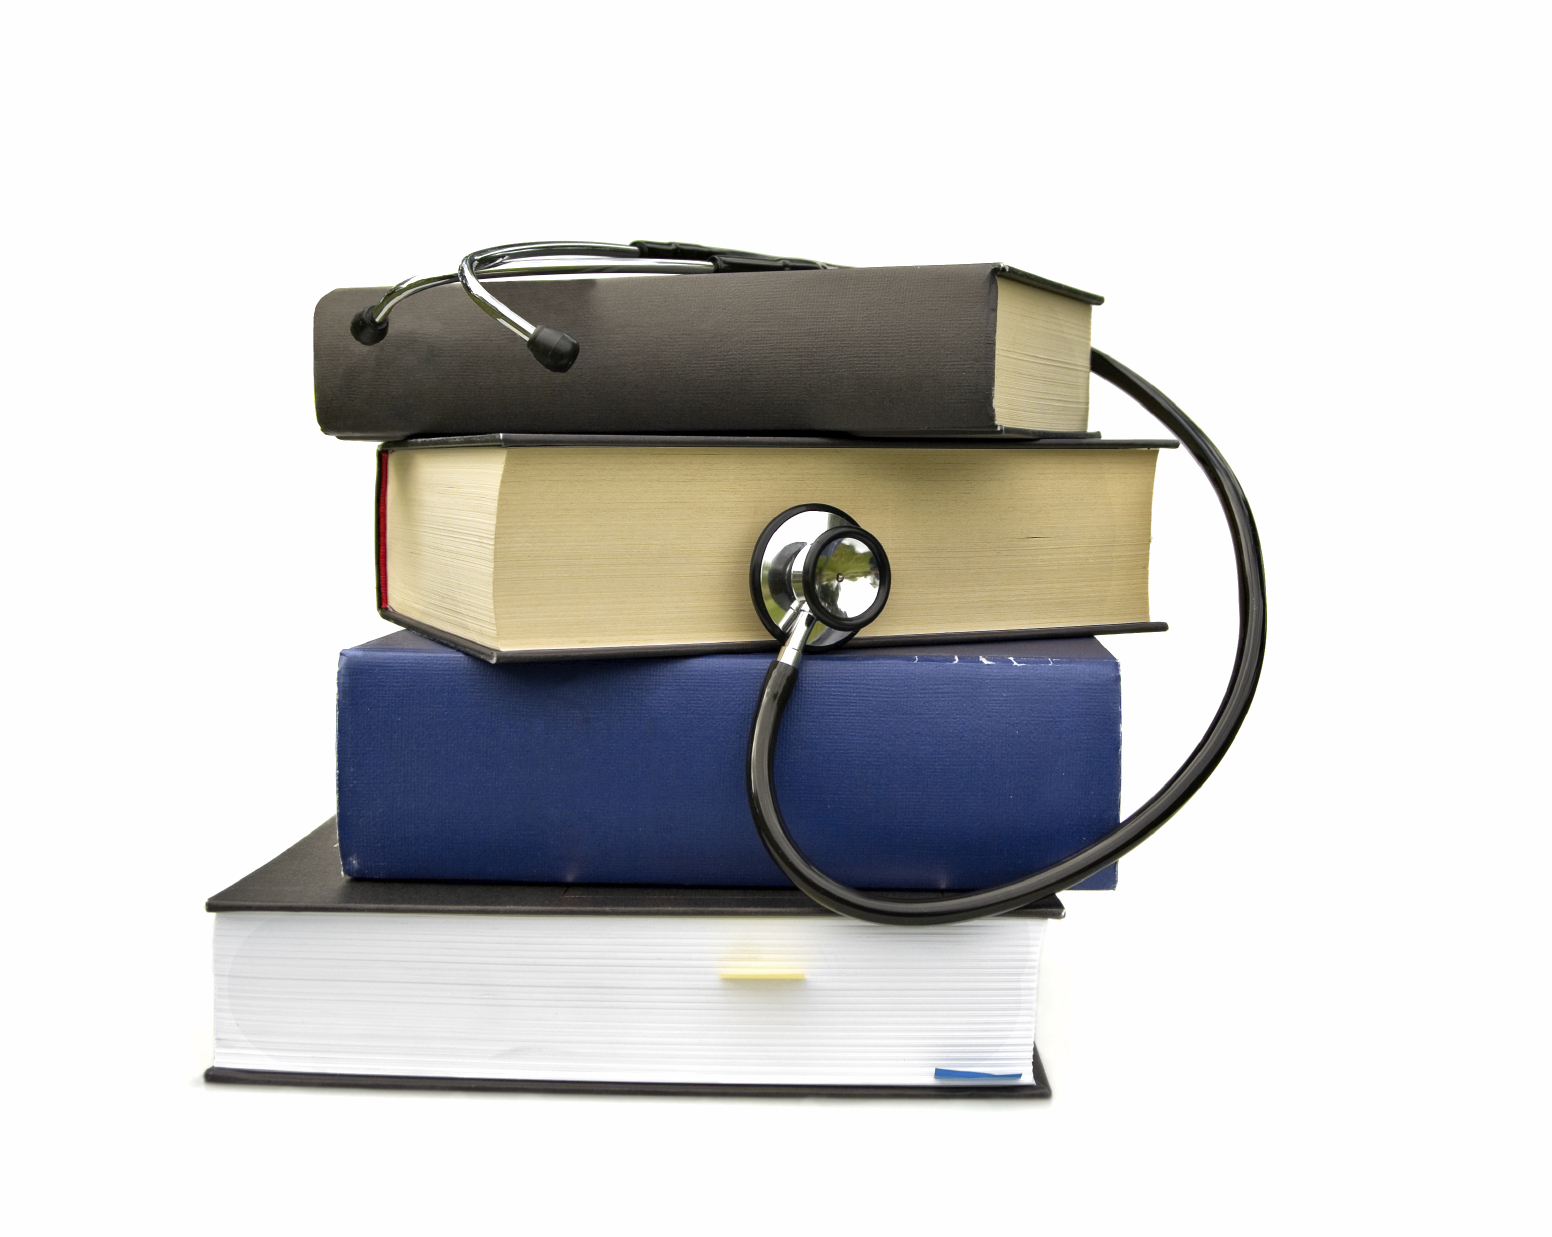 Five books to read before starting medical school